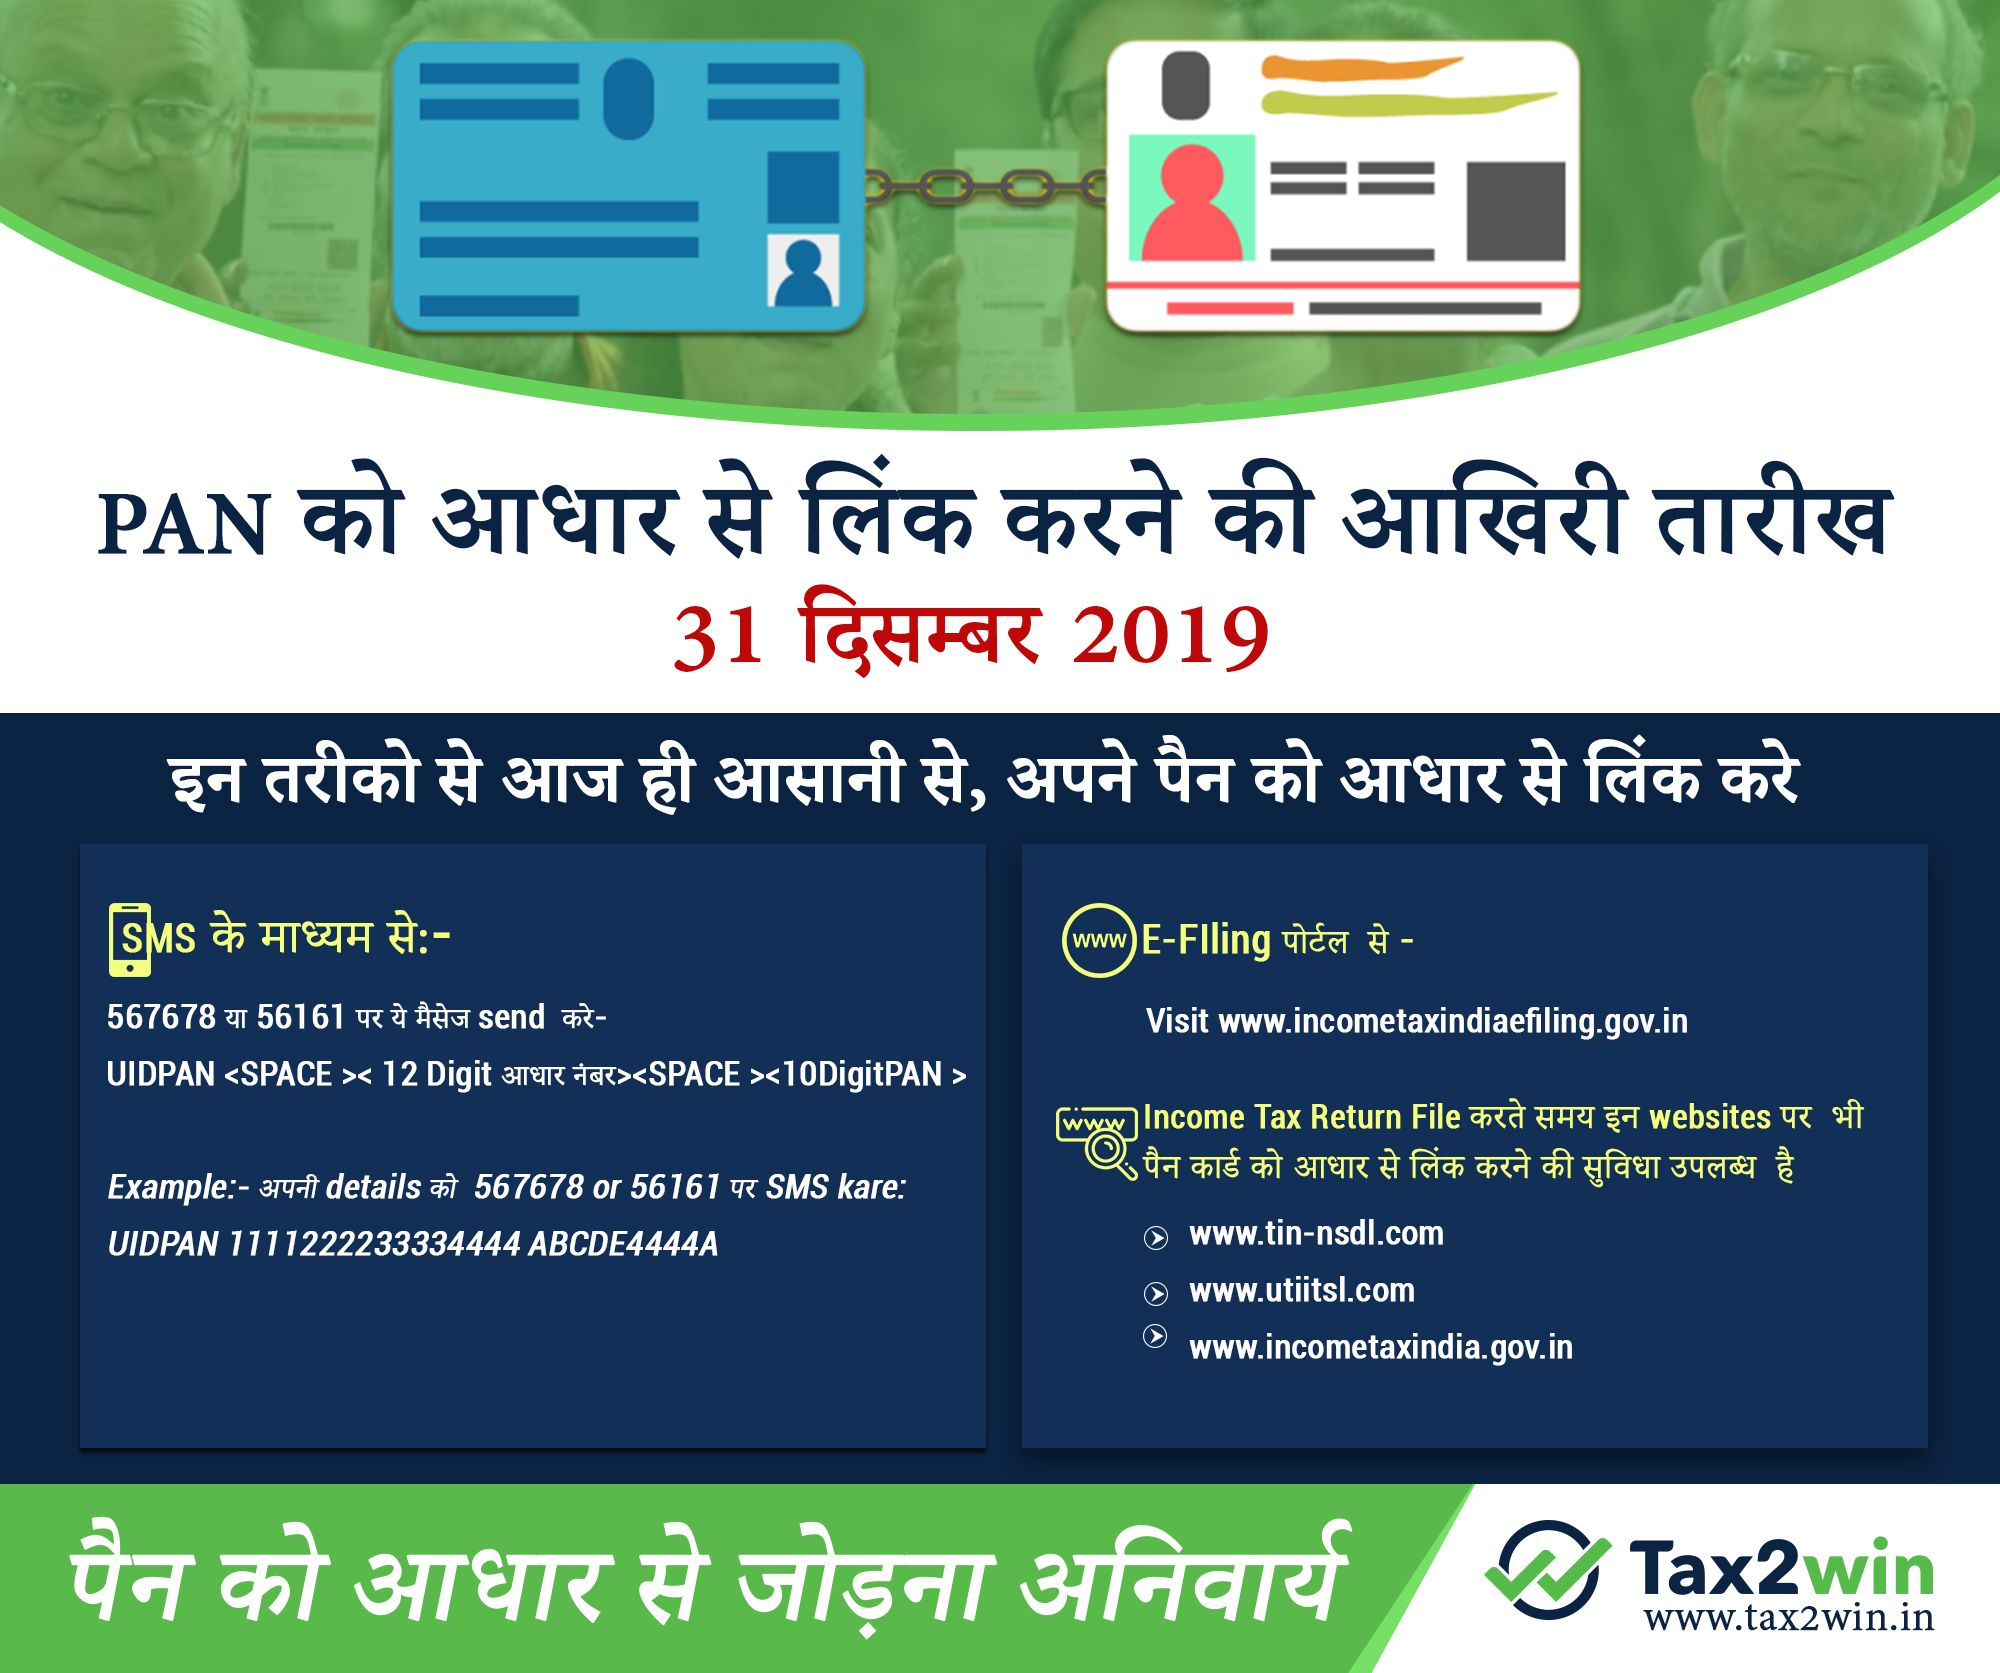 How To Link Aadhaar Card With Pan Card Online Cards Online Government